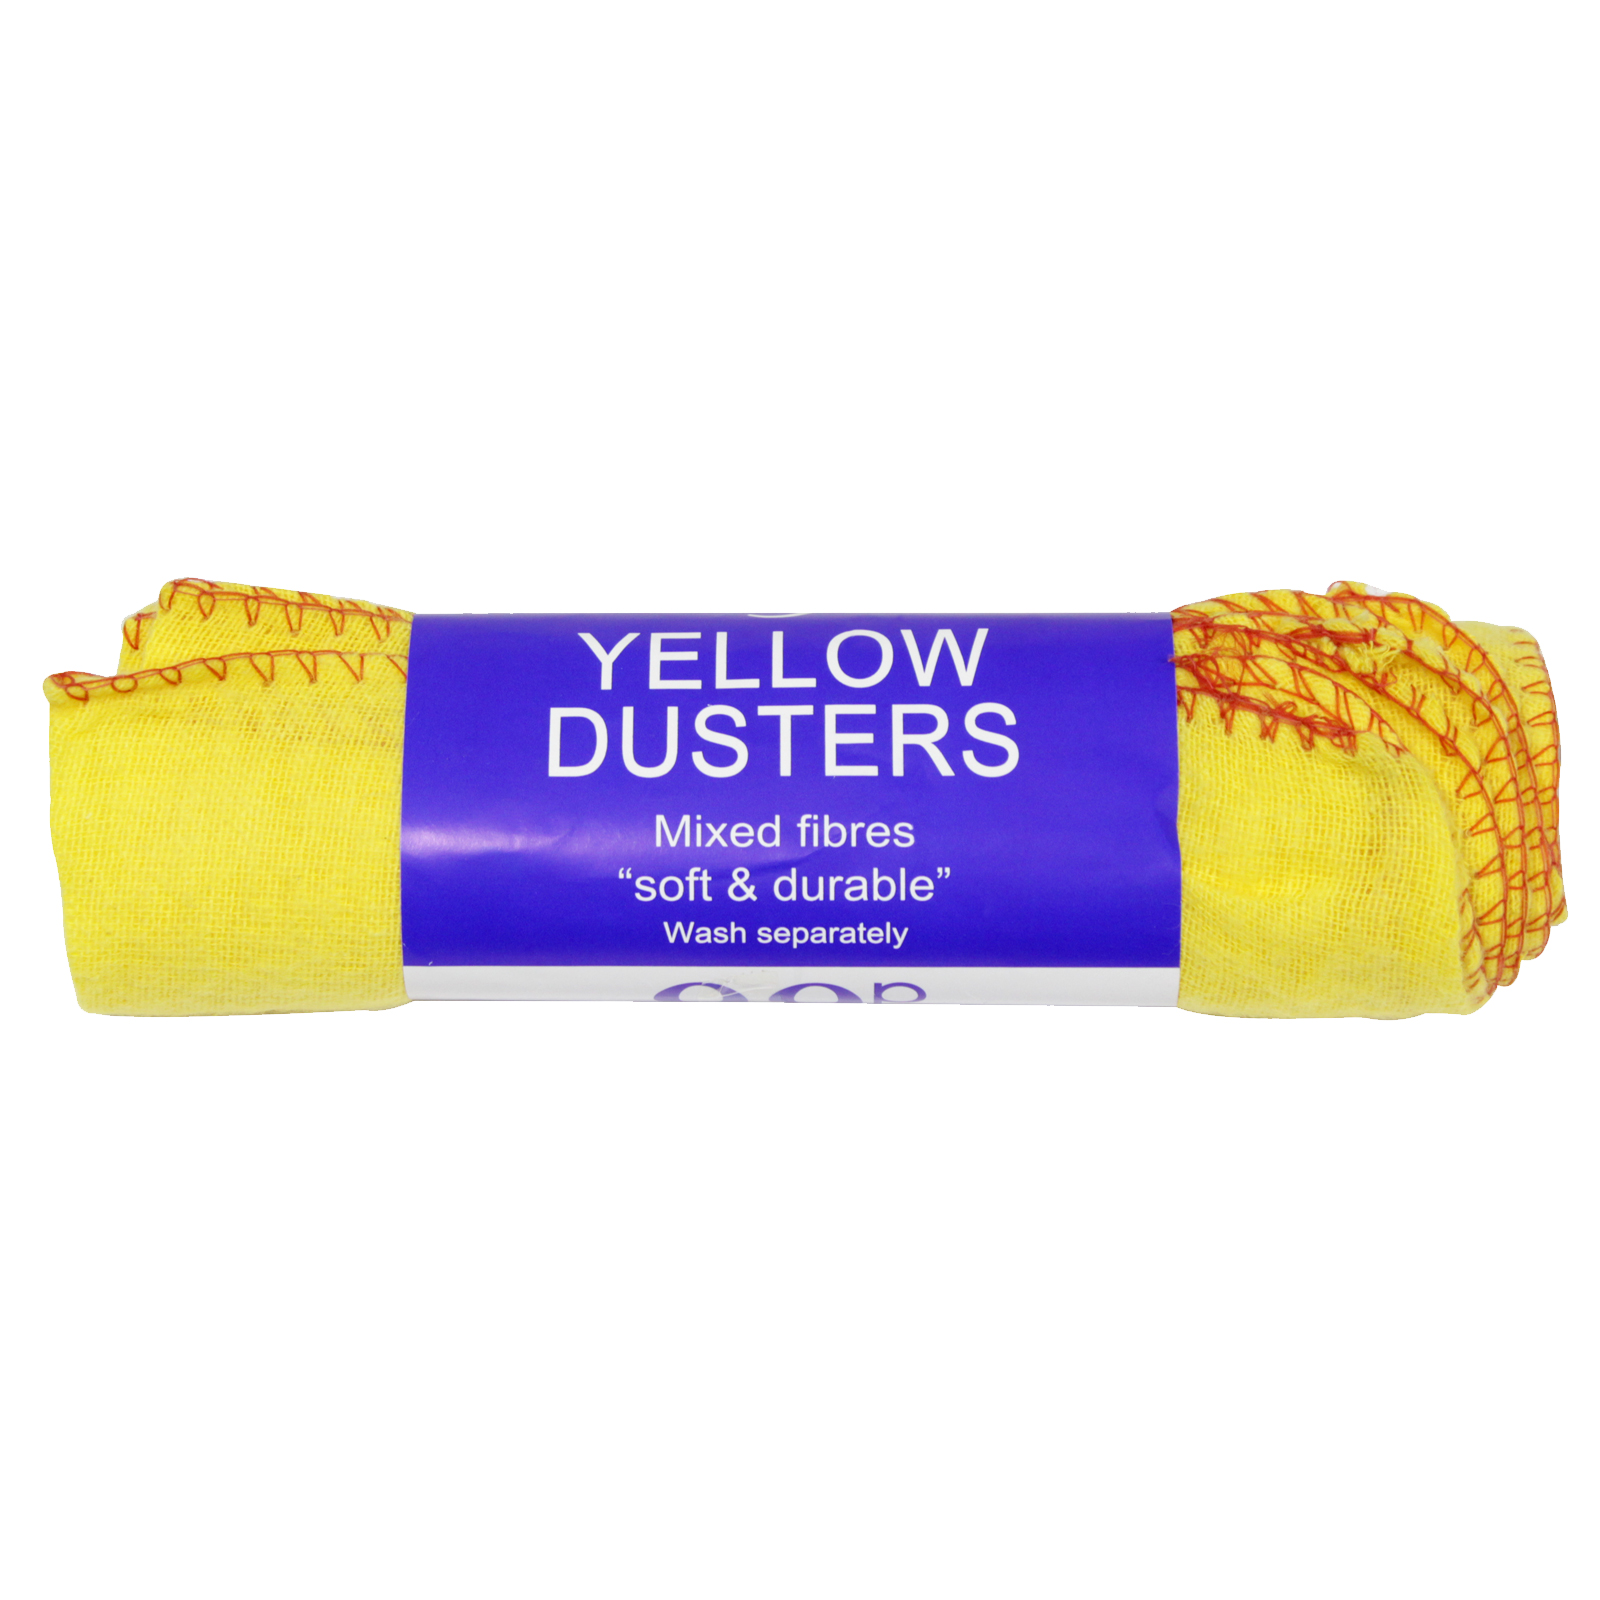 LIFESTYLE 99P YELLOW DUSTERS 5PK